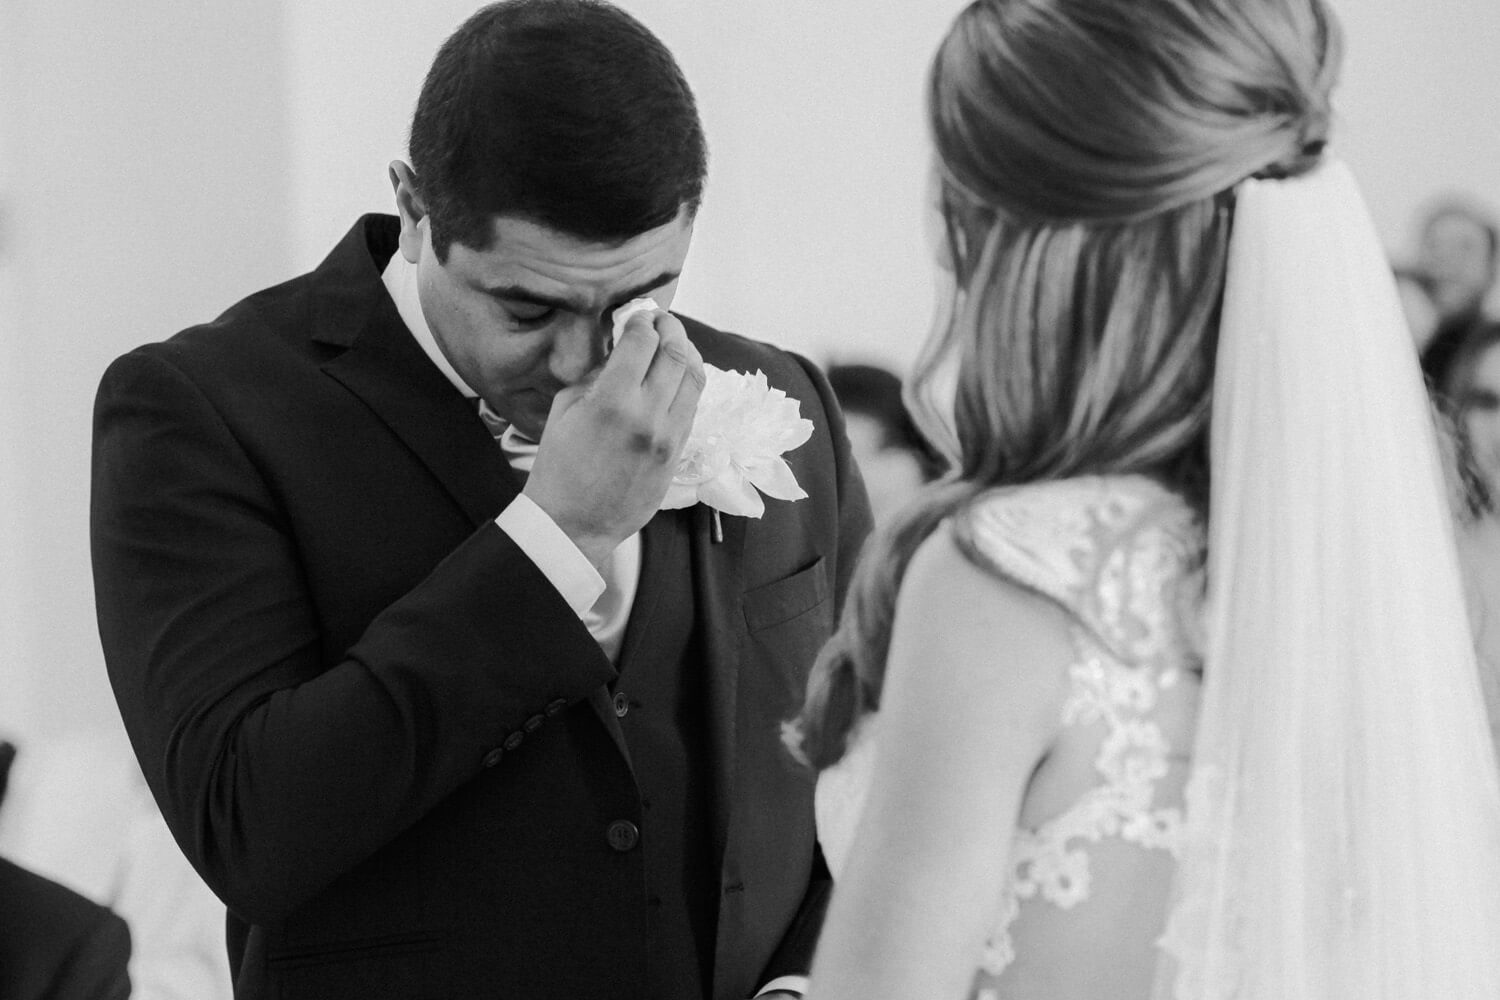 Groom whipping tears during wedding ceremony